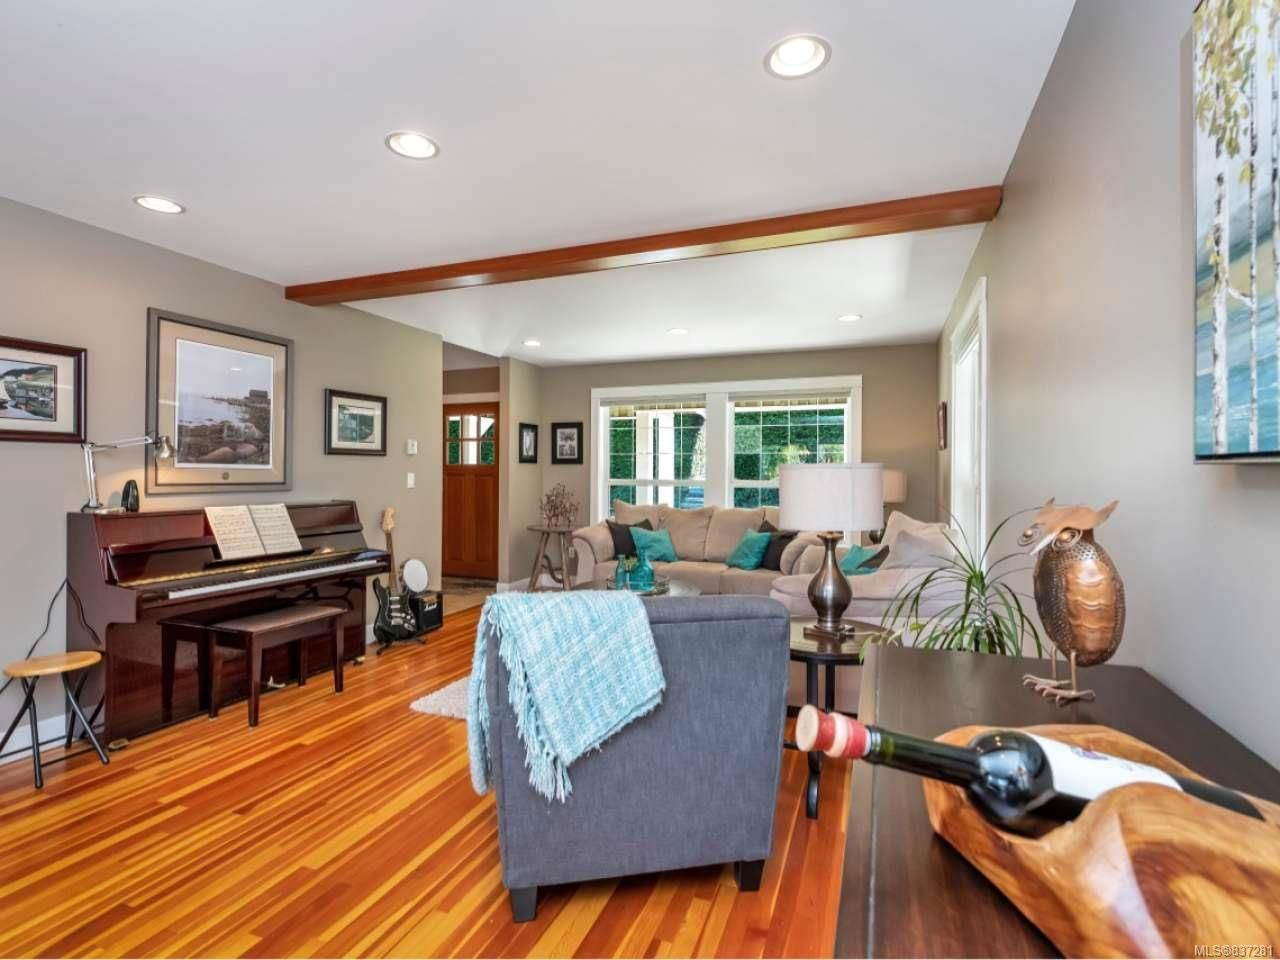 Photo 17: Photos: 925 Lilmac Rd in MILL BAY: ML Mill Bay House for sale (Malahat & Area)  : MLS®# 837281